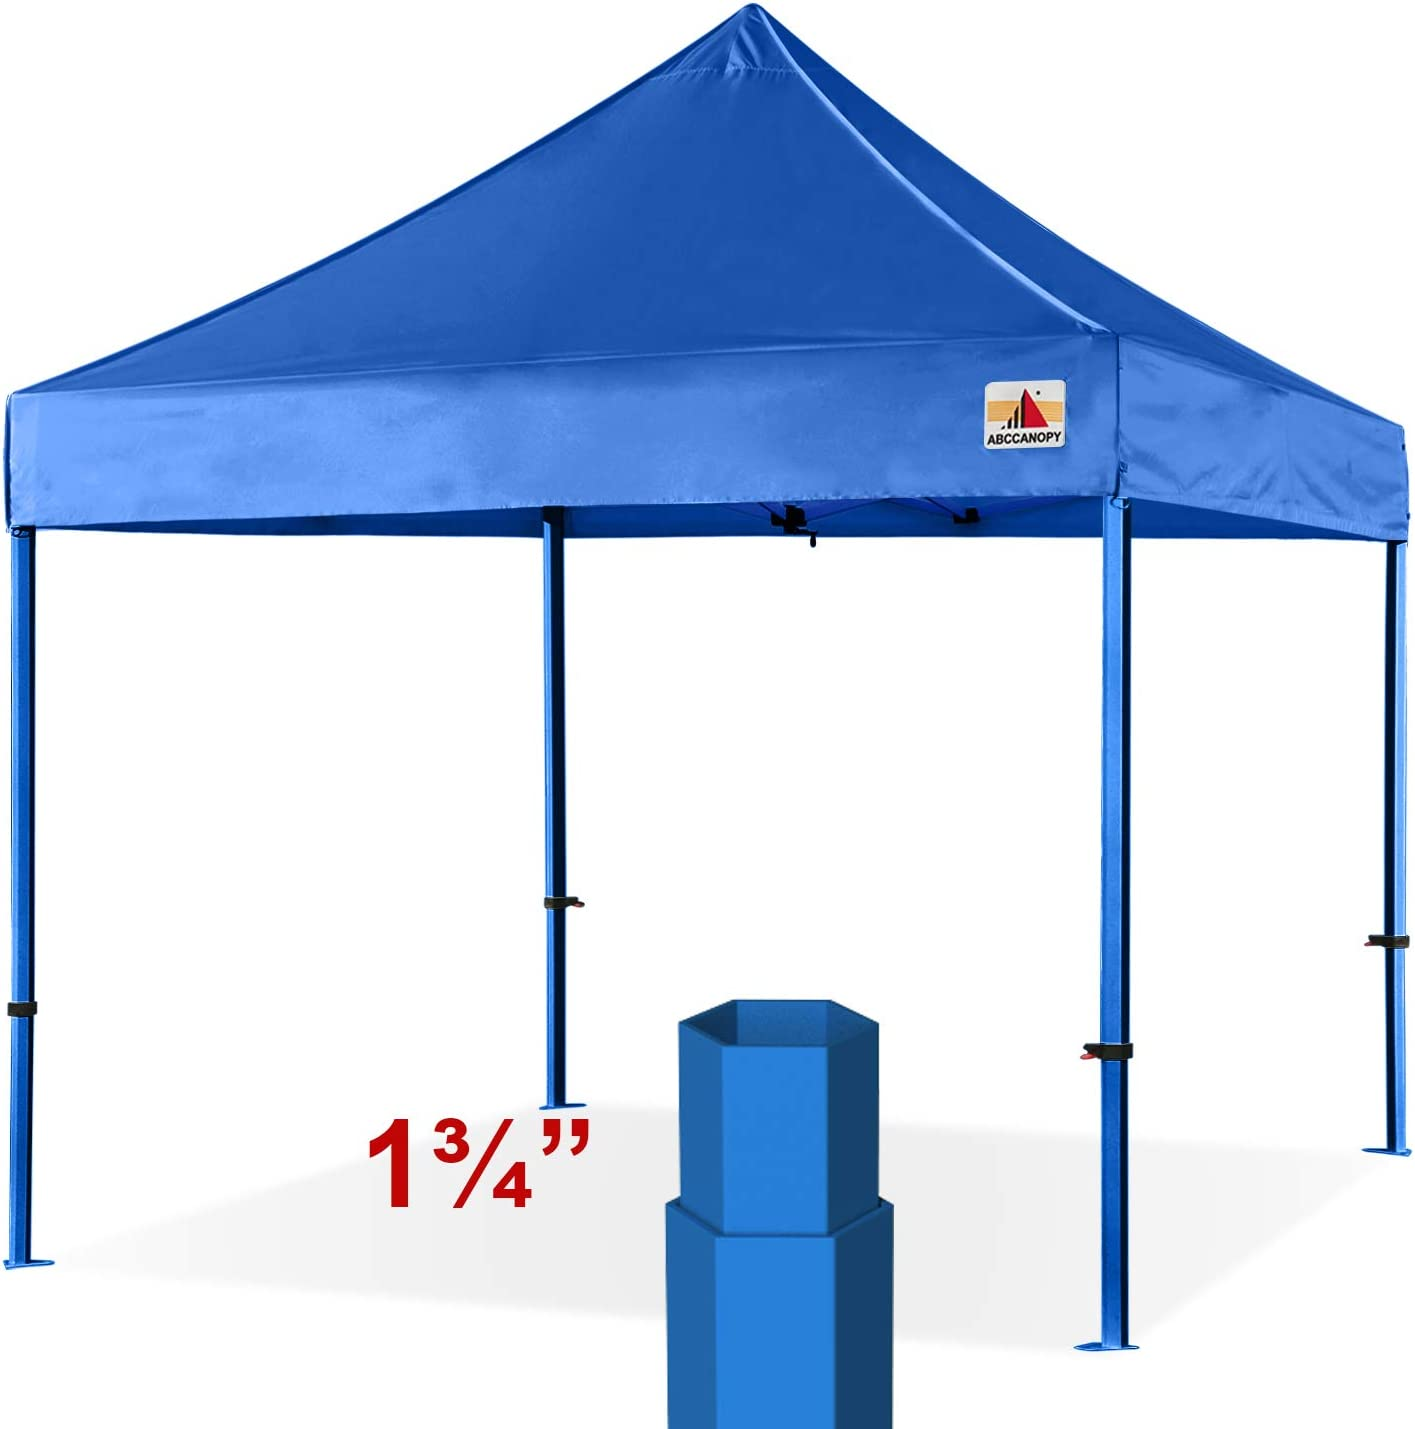 ABCCANOPY Professional 10x10 Easy Pop-up Canopy Tent Commercial Instant Shelter with Wheeled Carry Bag Bonus 4 Weight Bags White